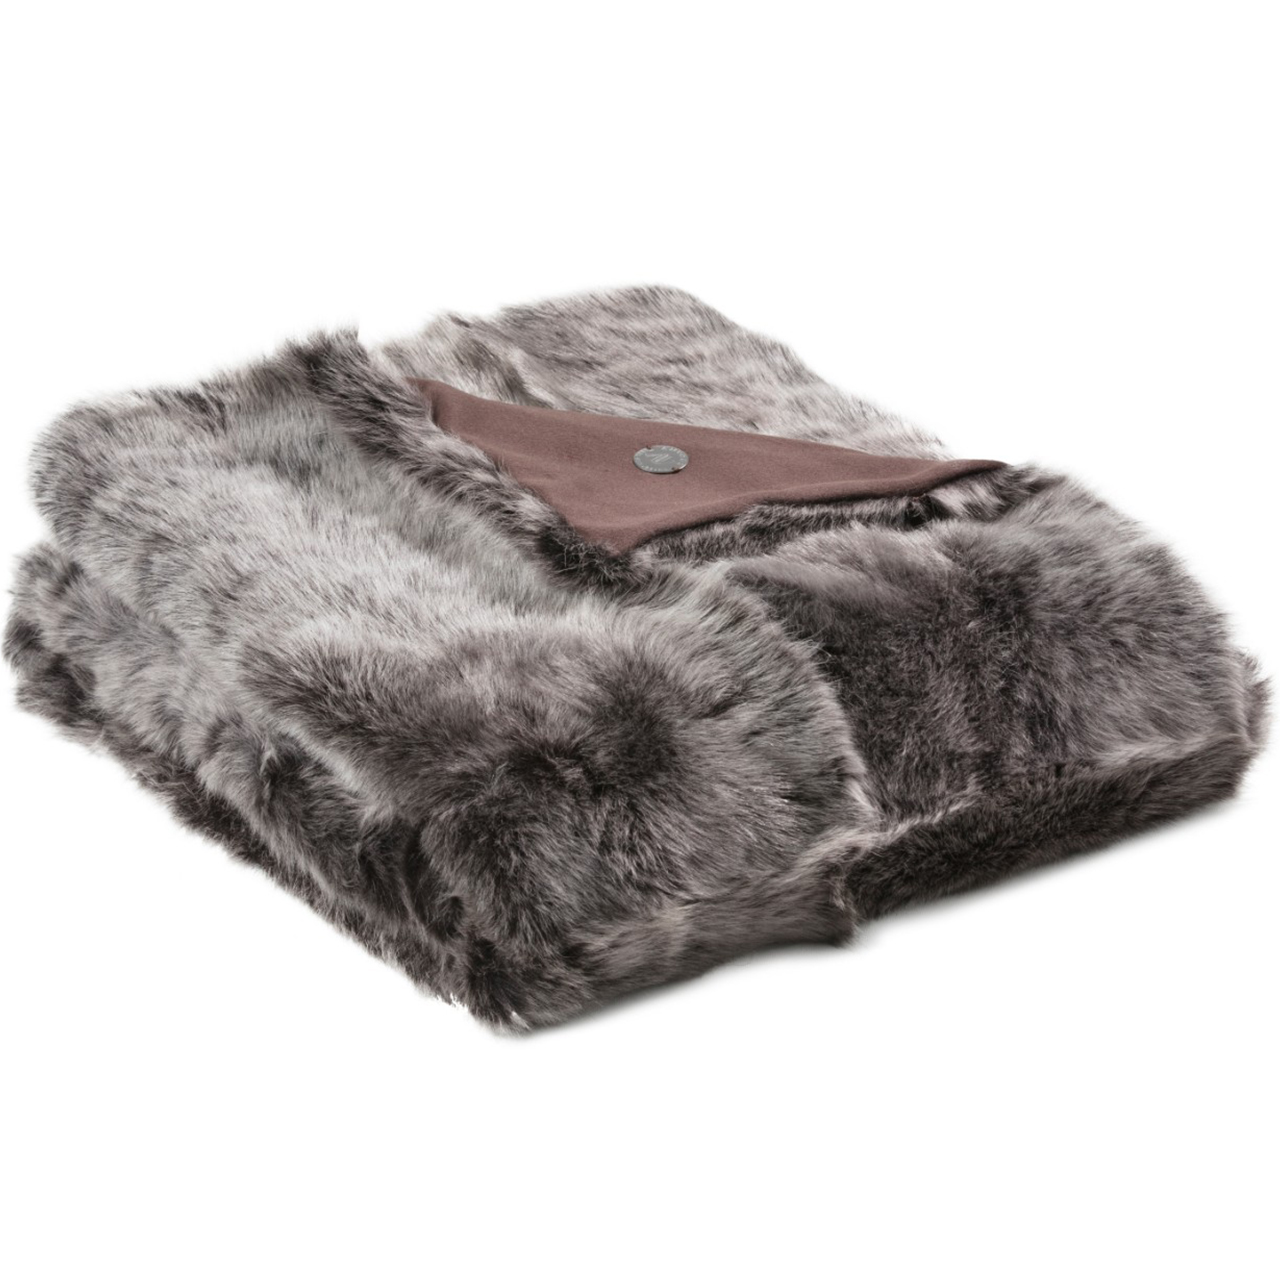 NEW-Shearling Throw-EHB-134x150cm (STEHBBR134150) - ANVOGG FEEL SHEARLING | ANVOGG